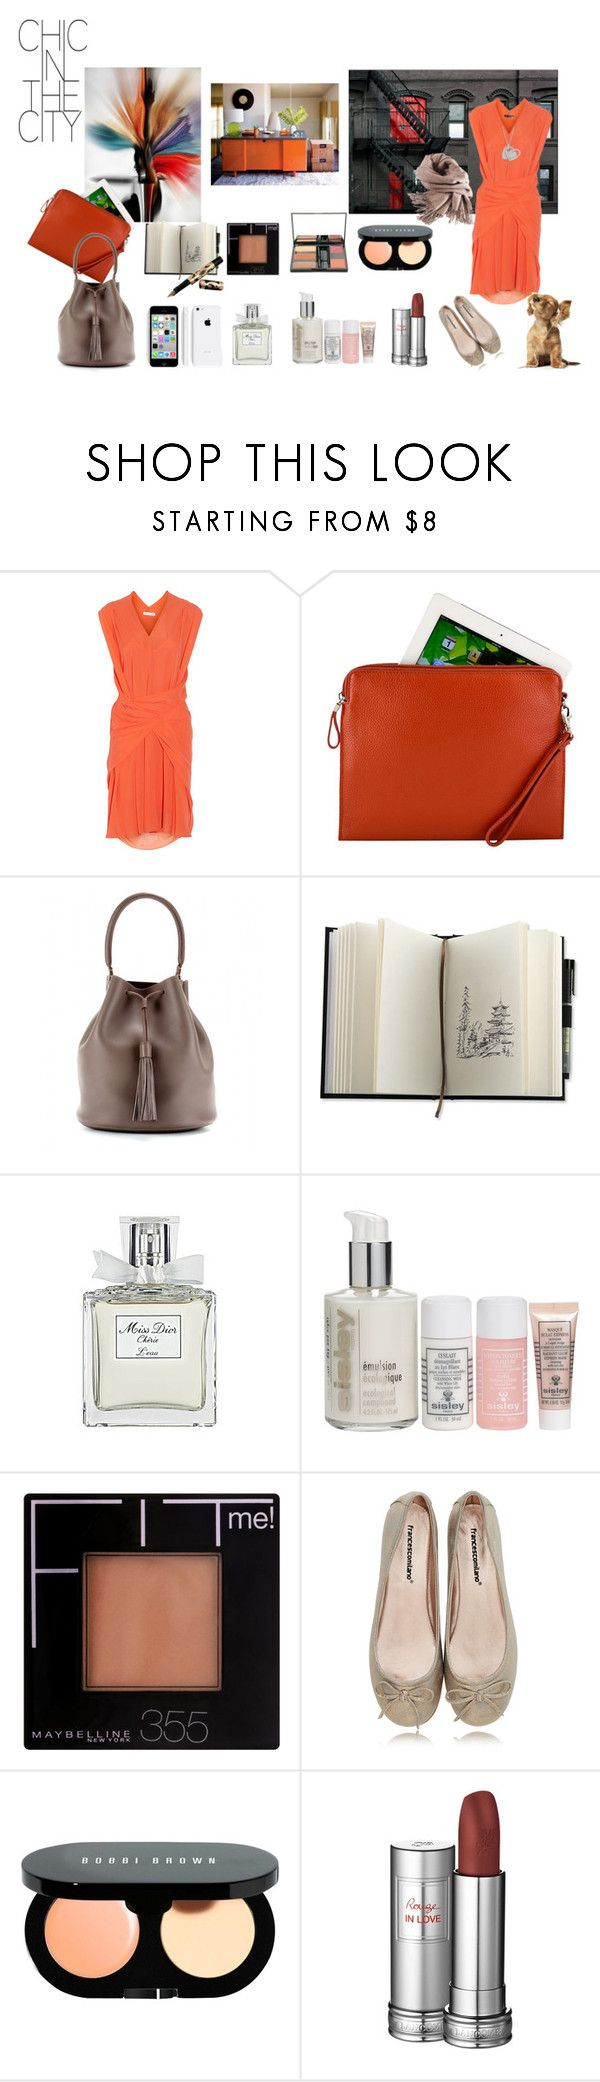 """Colors and neutral for work Style"" by nathalie-puex ❤ liked on Polyvore featuring See by Chloé, Alicia Klein, Anya Hindmarch, Christian Dior, Sisley, Maybelline, Francesco Milano, Bobbi Brown Cosmetics, Dr.Hauschka and Filippa K"